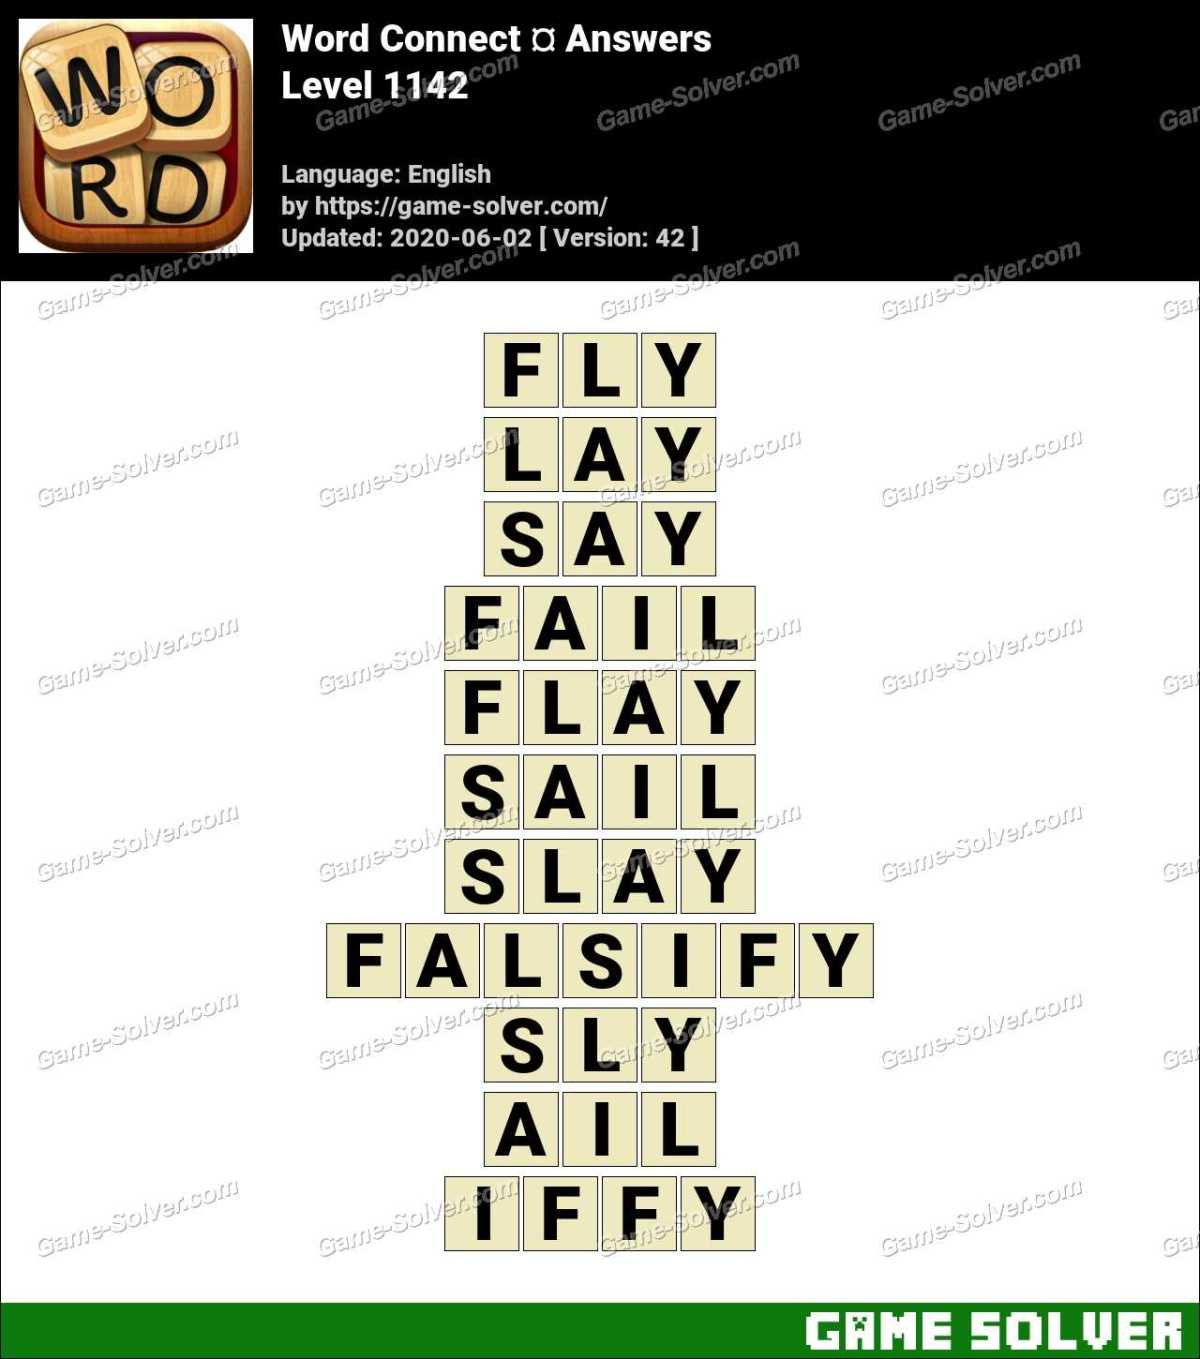 Word Connect Level 1142 Answers